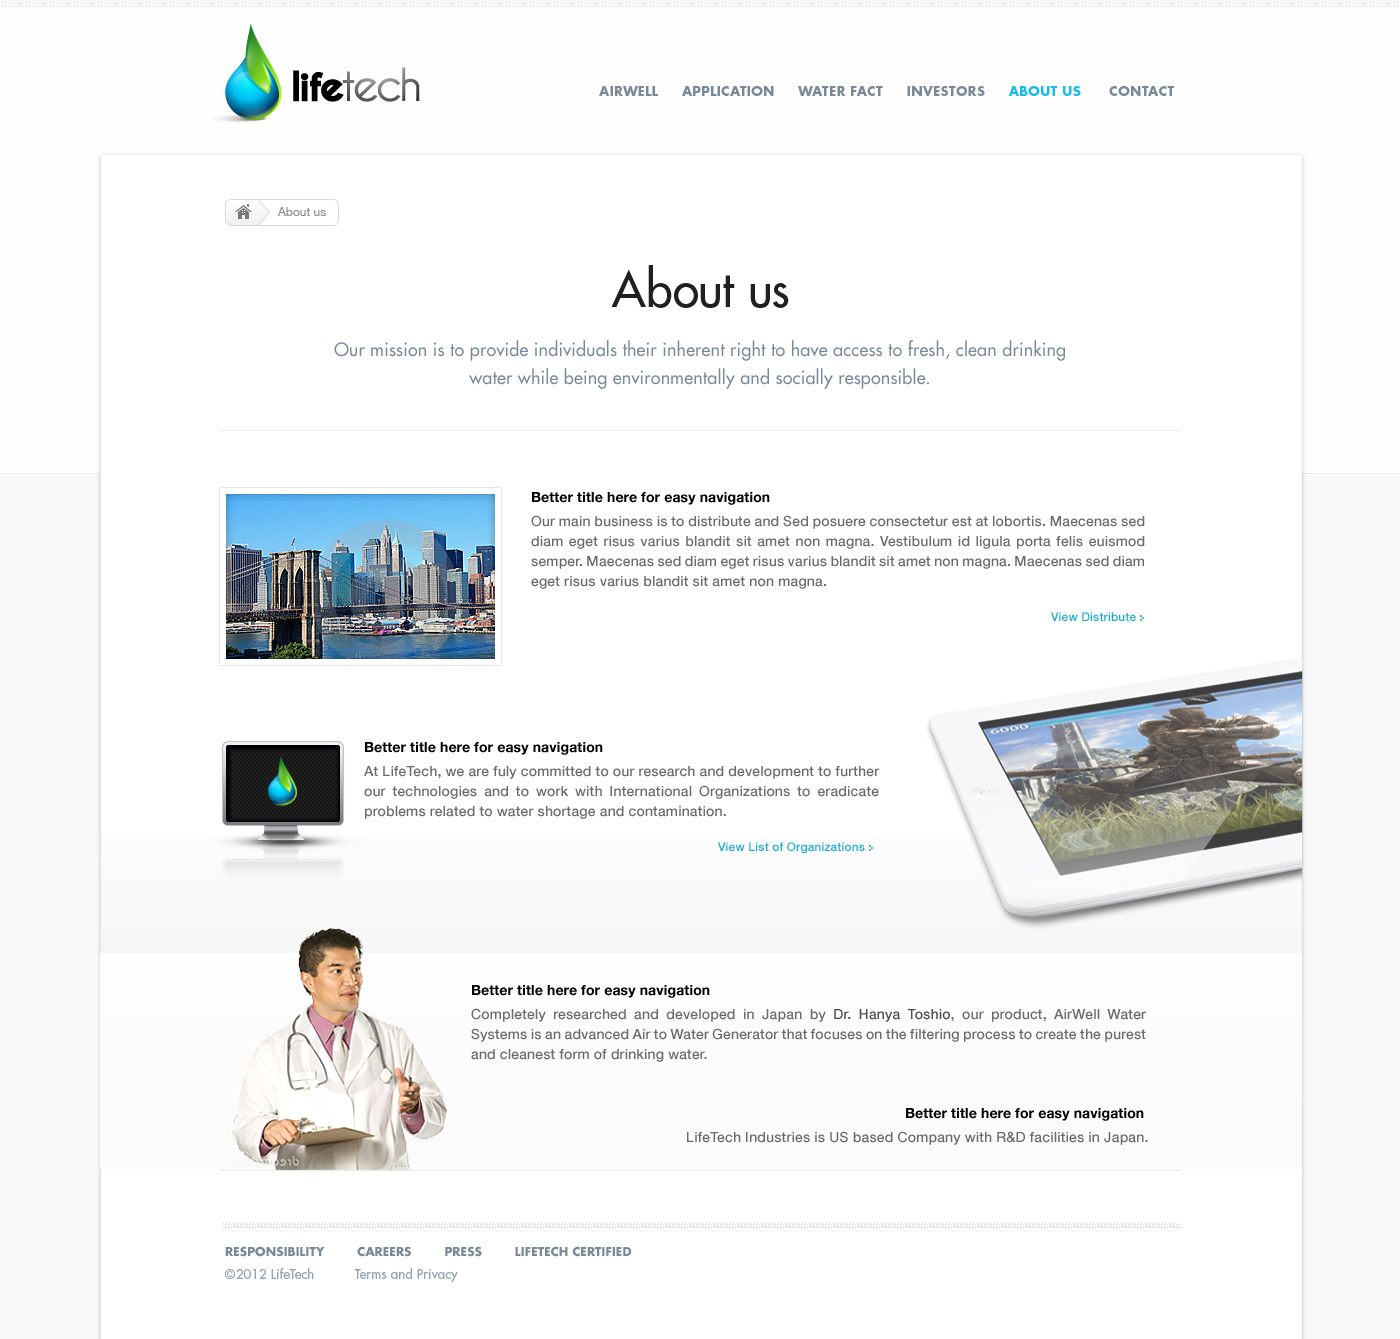 New website design for LifeTech: We turn air into drinking water.